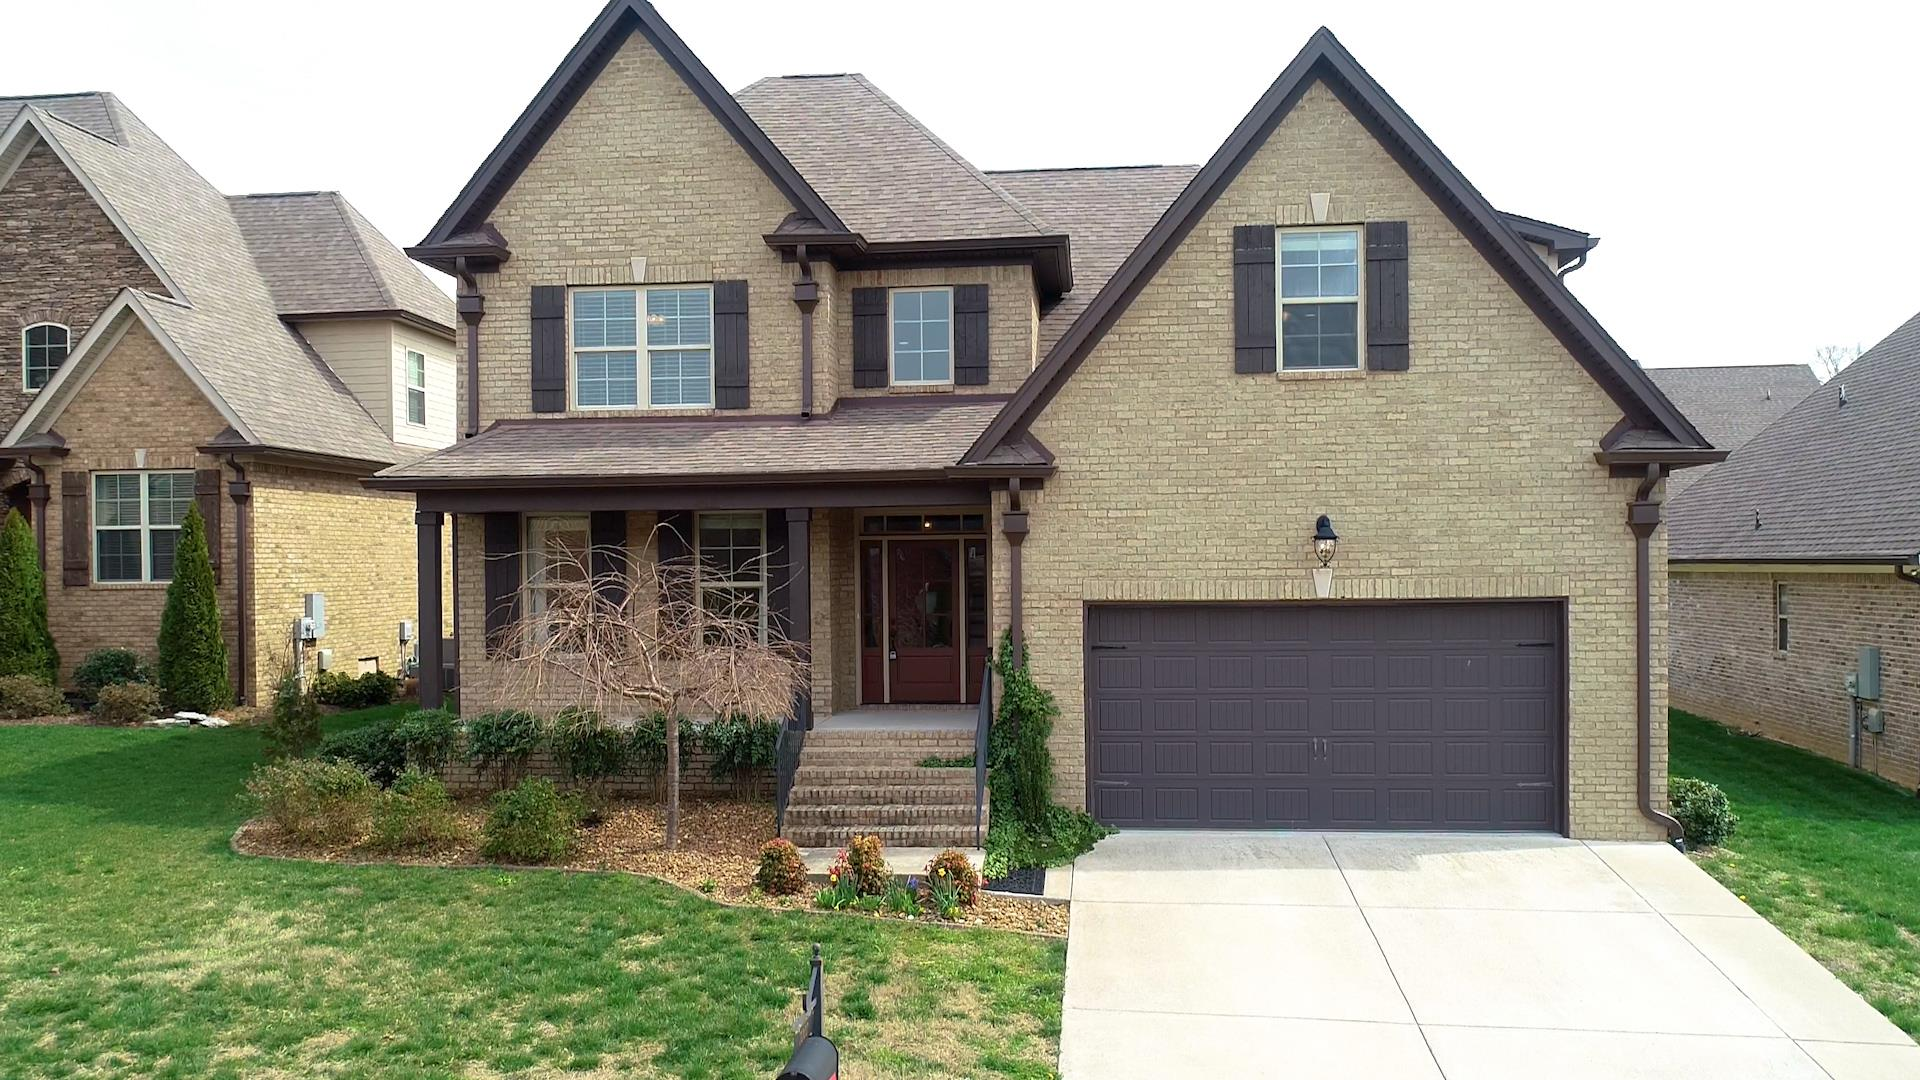 7002 Brindle Ridge Way, Spring Hill, Tennessee